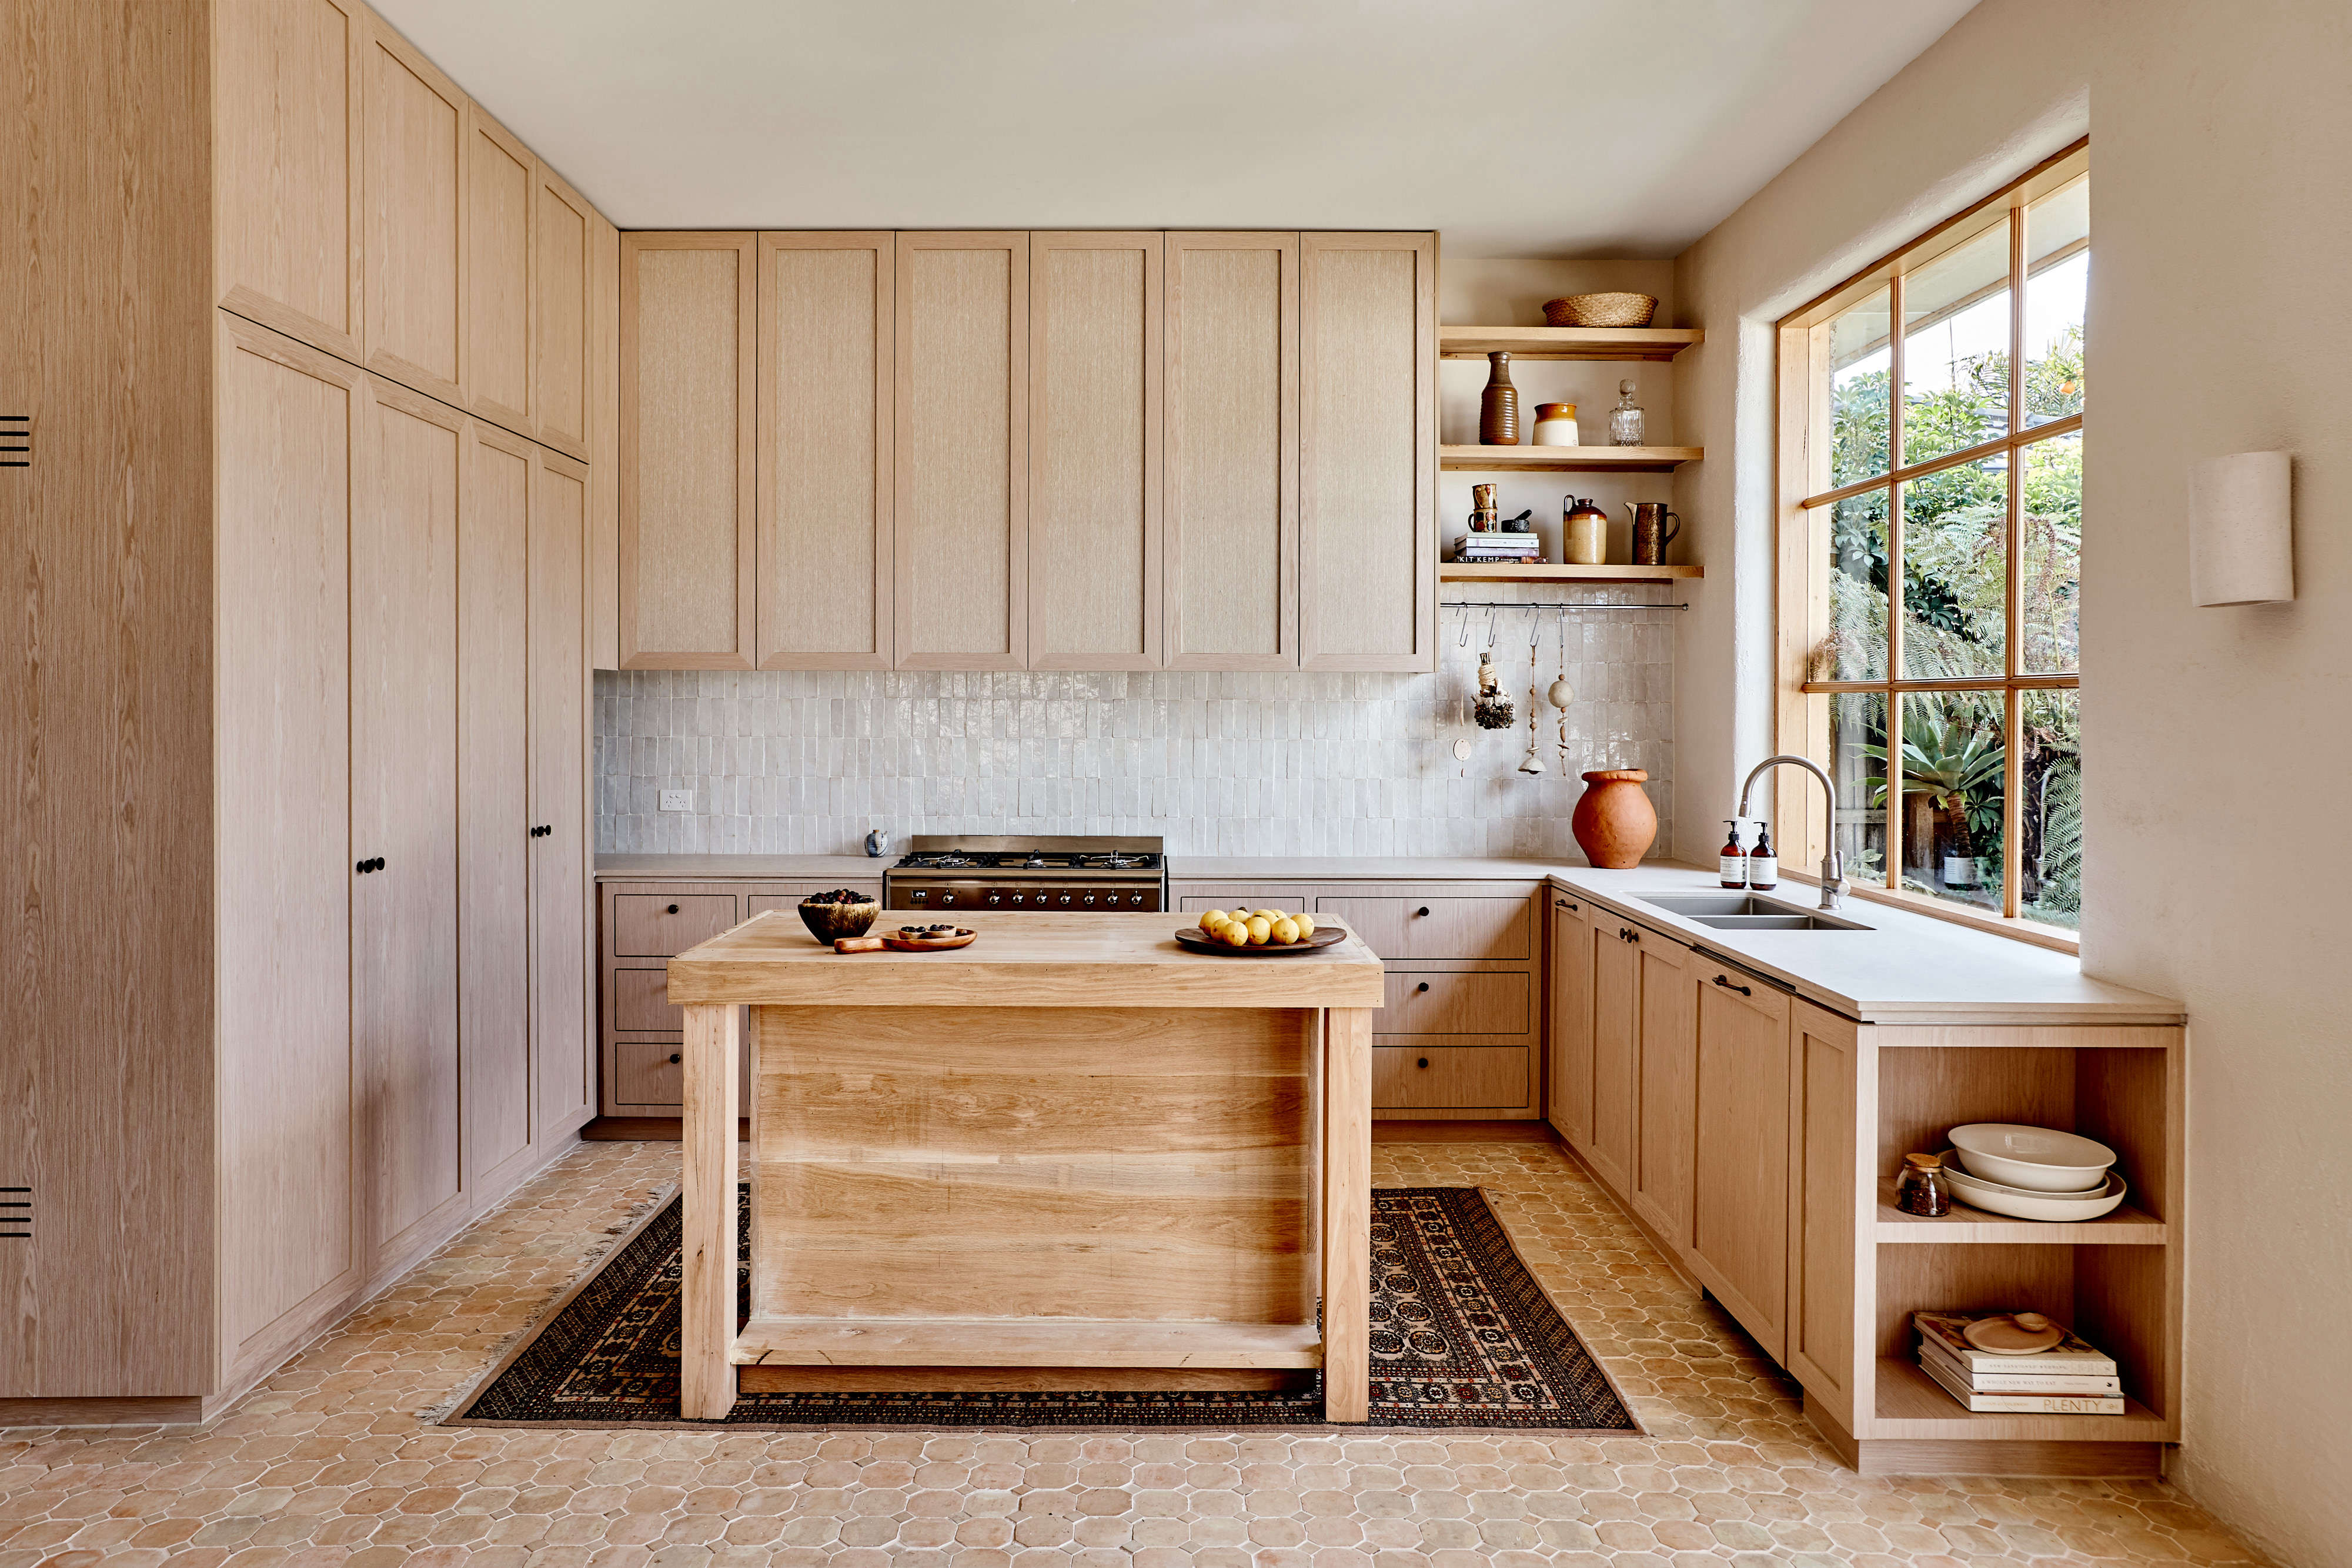 A Star Modern Rustic Kitchen In Melbourne Australian House And Garden S Kitchen Of 2019 By